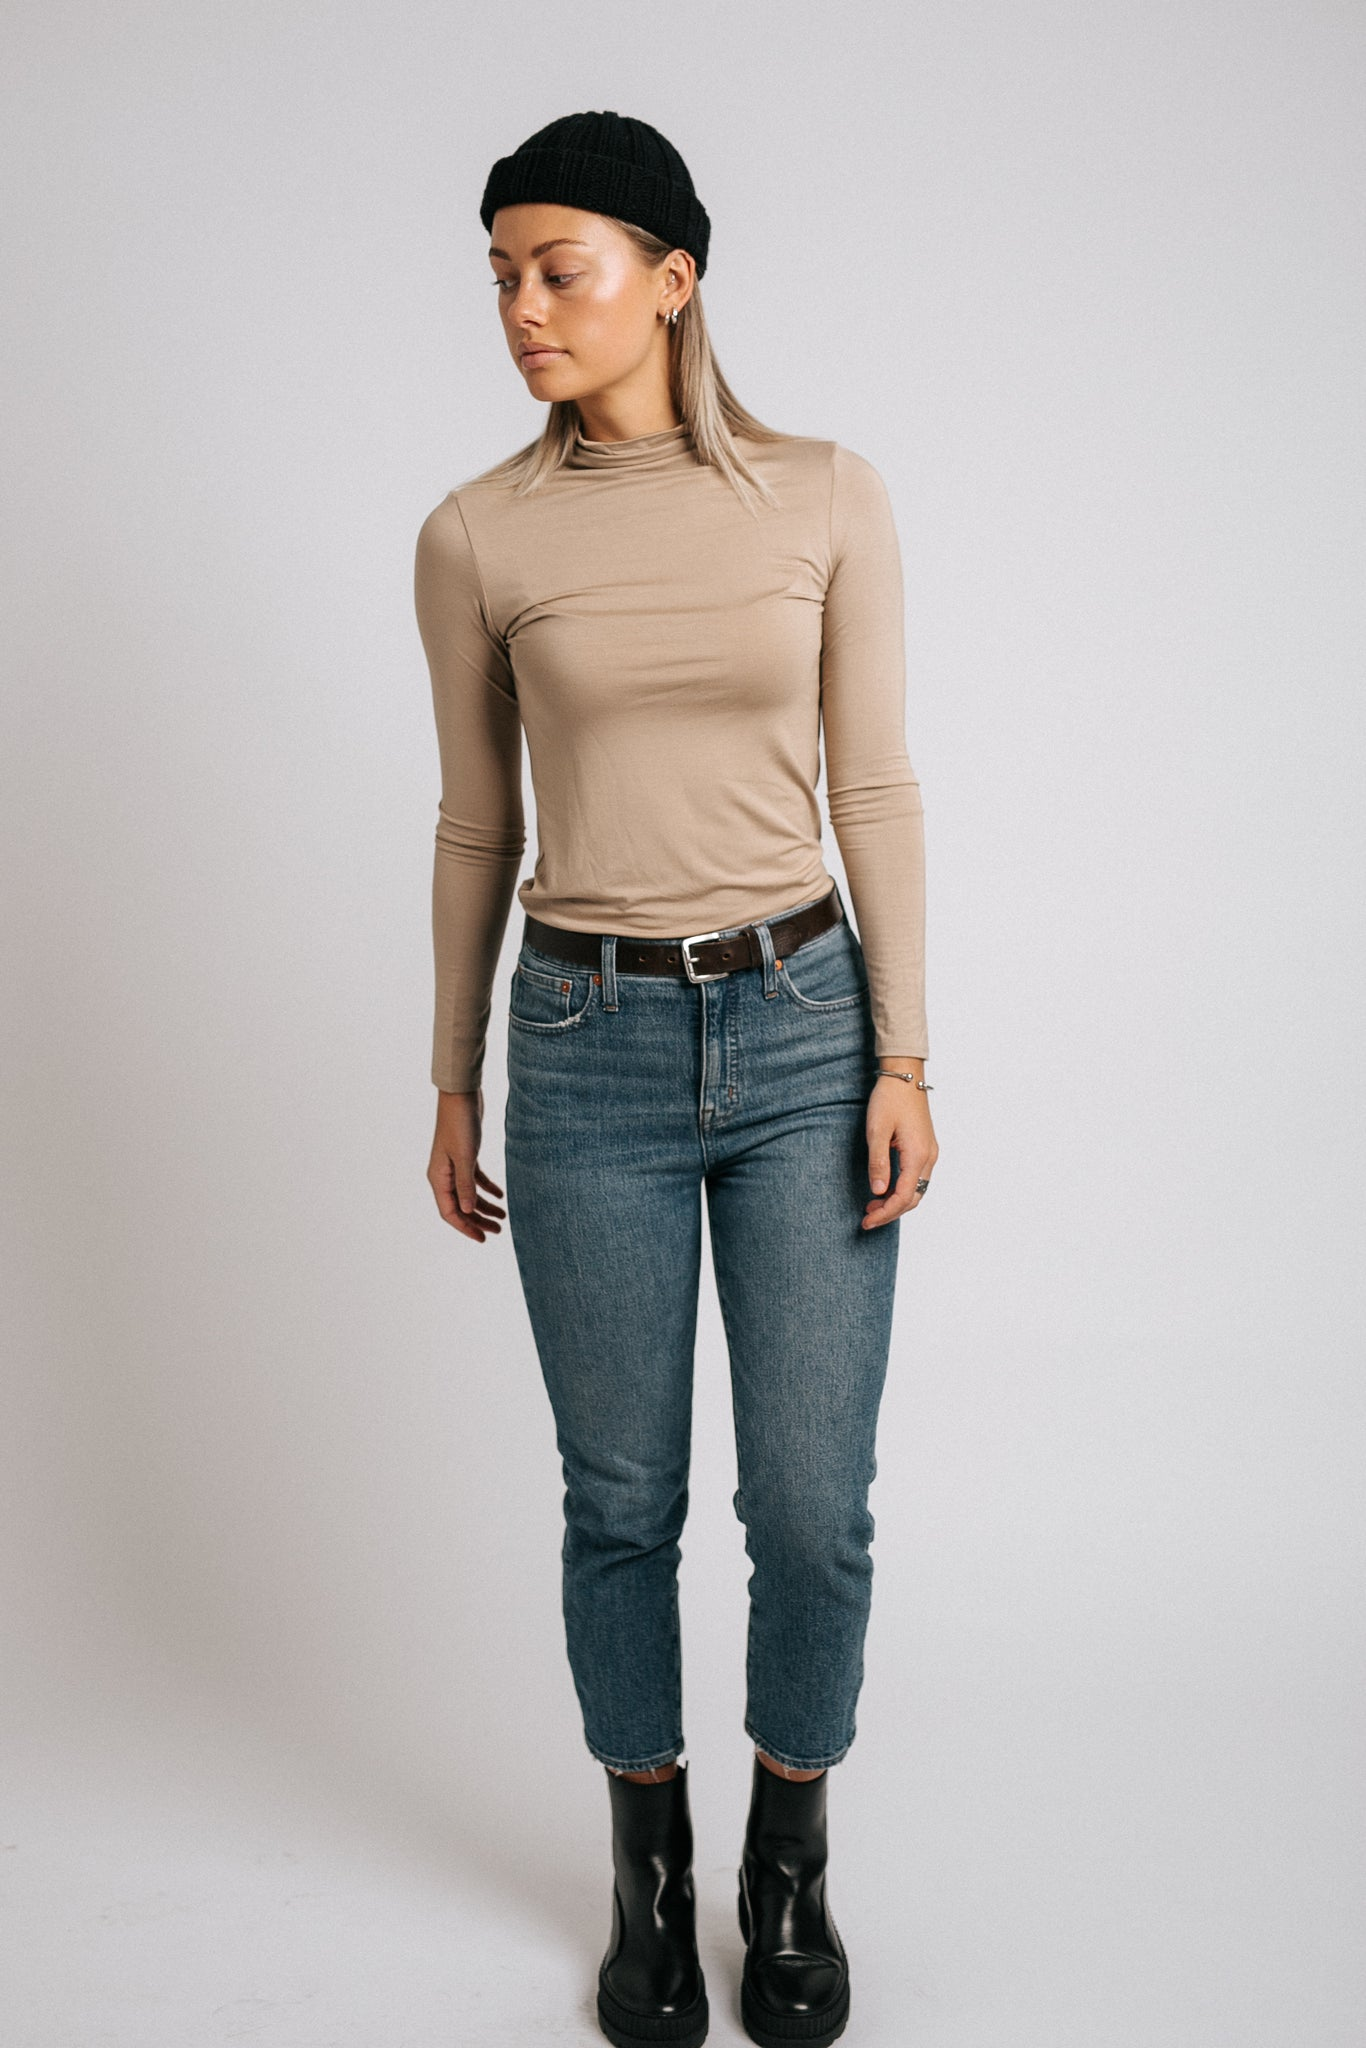 The Blake Mock Neck